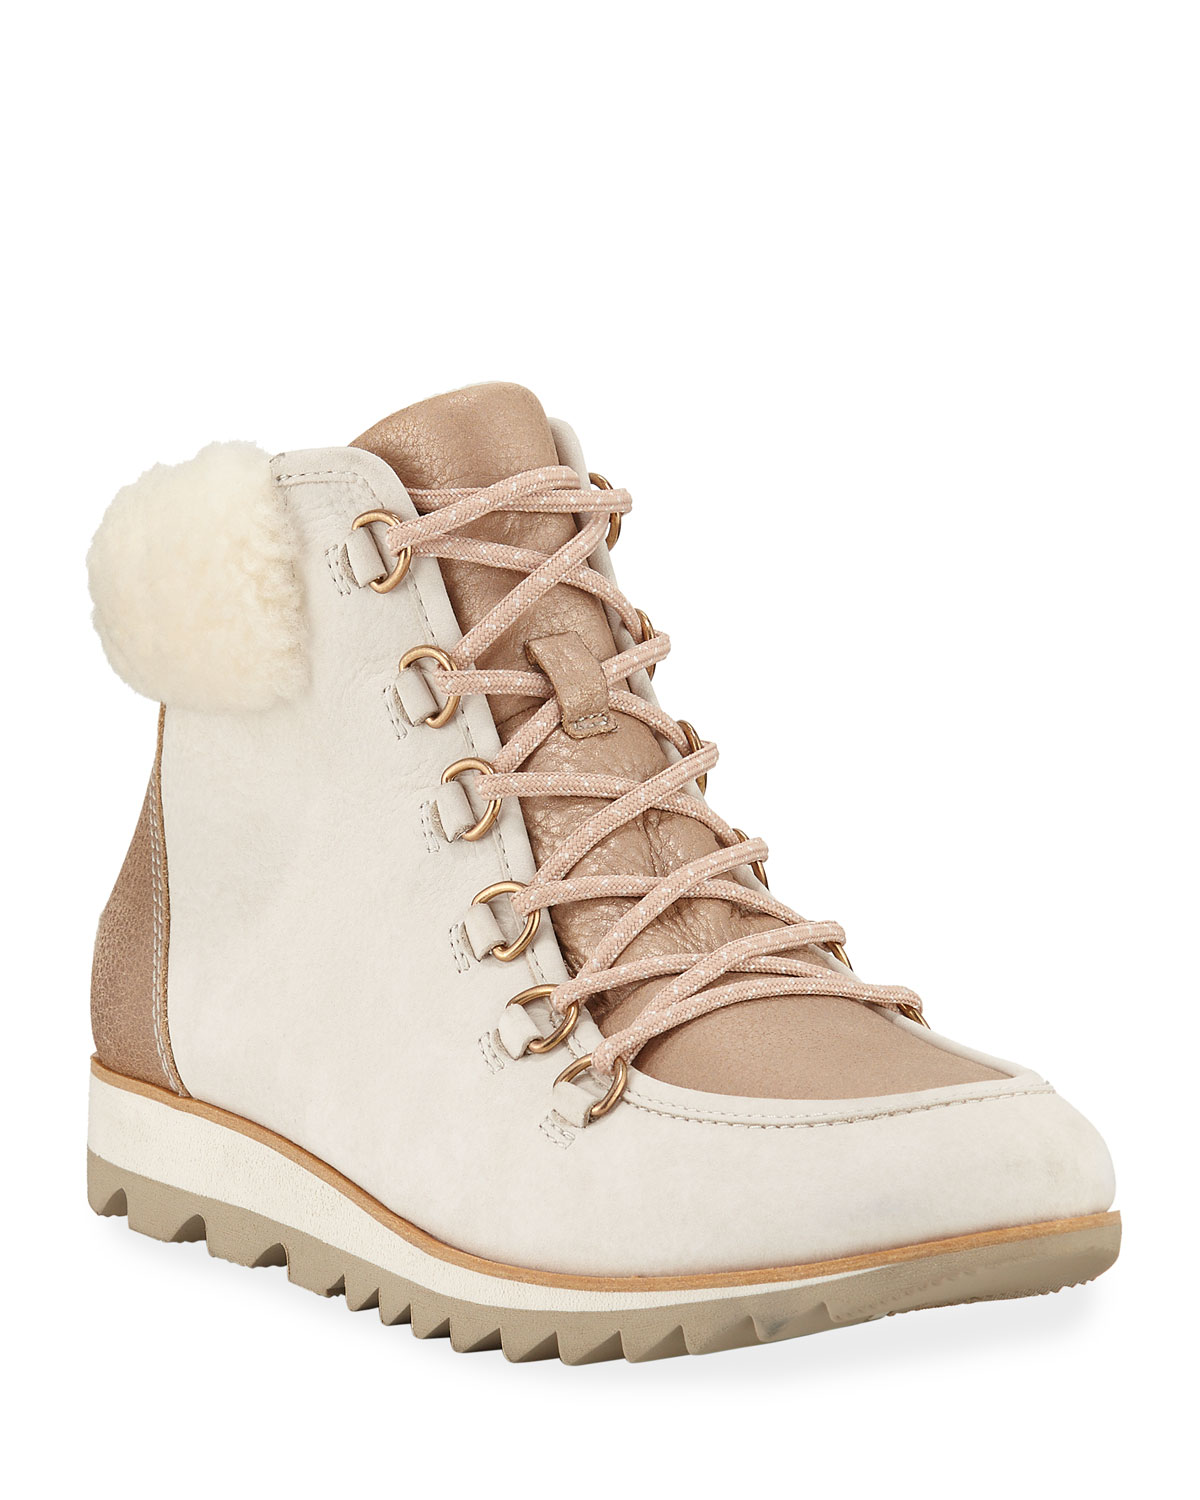 Harlow Lux Boots with Fur Trim